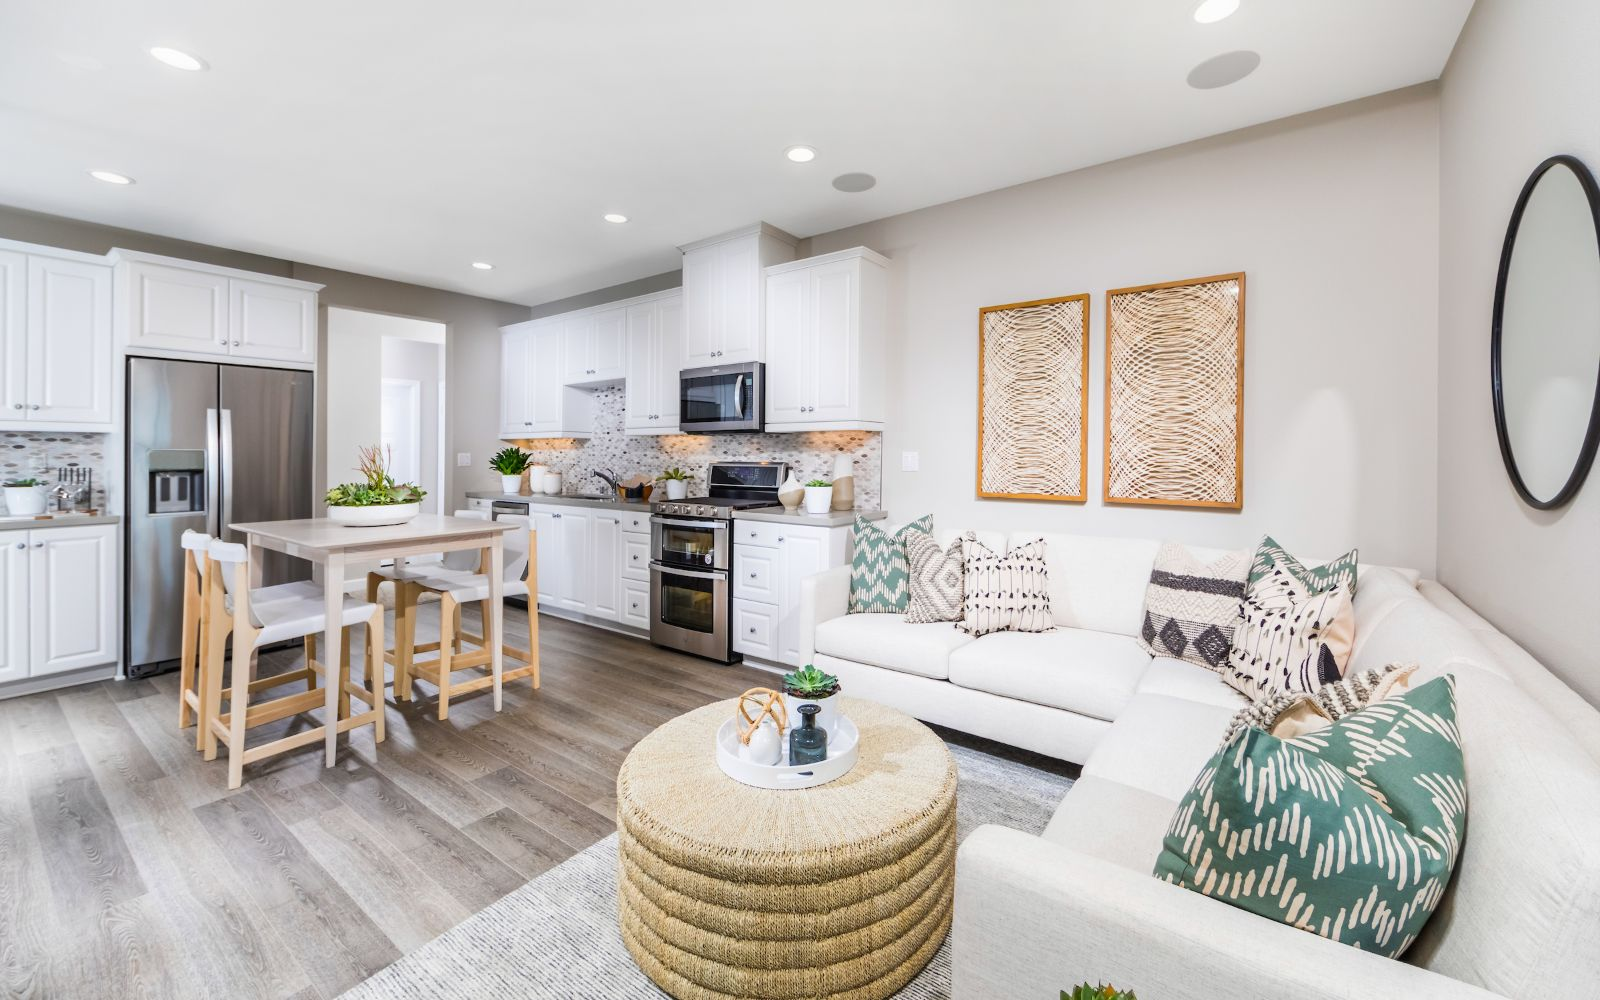 Towns Plan 2 Kitchen and Living Room | Lantana @Beach in Stanton, CA | Brookfield Residential